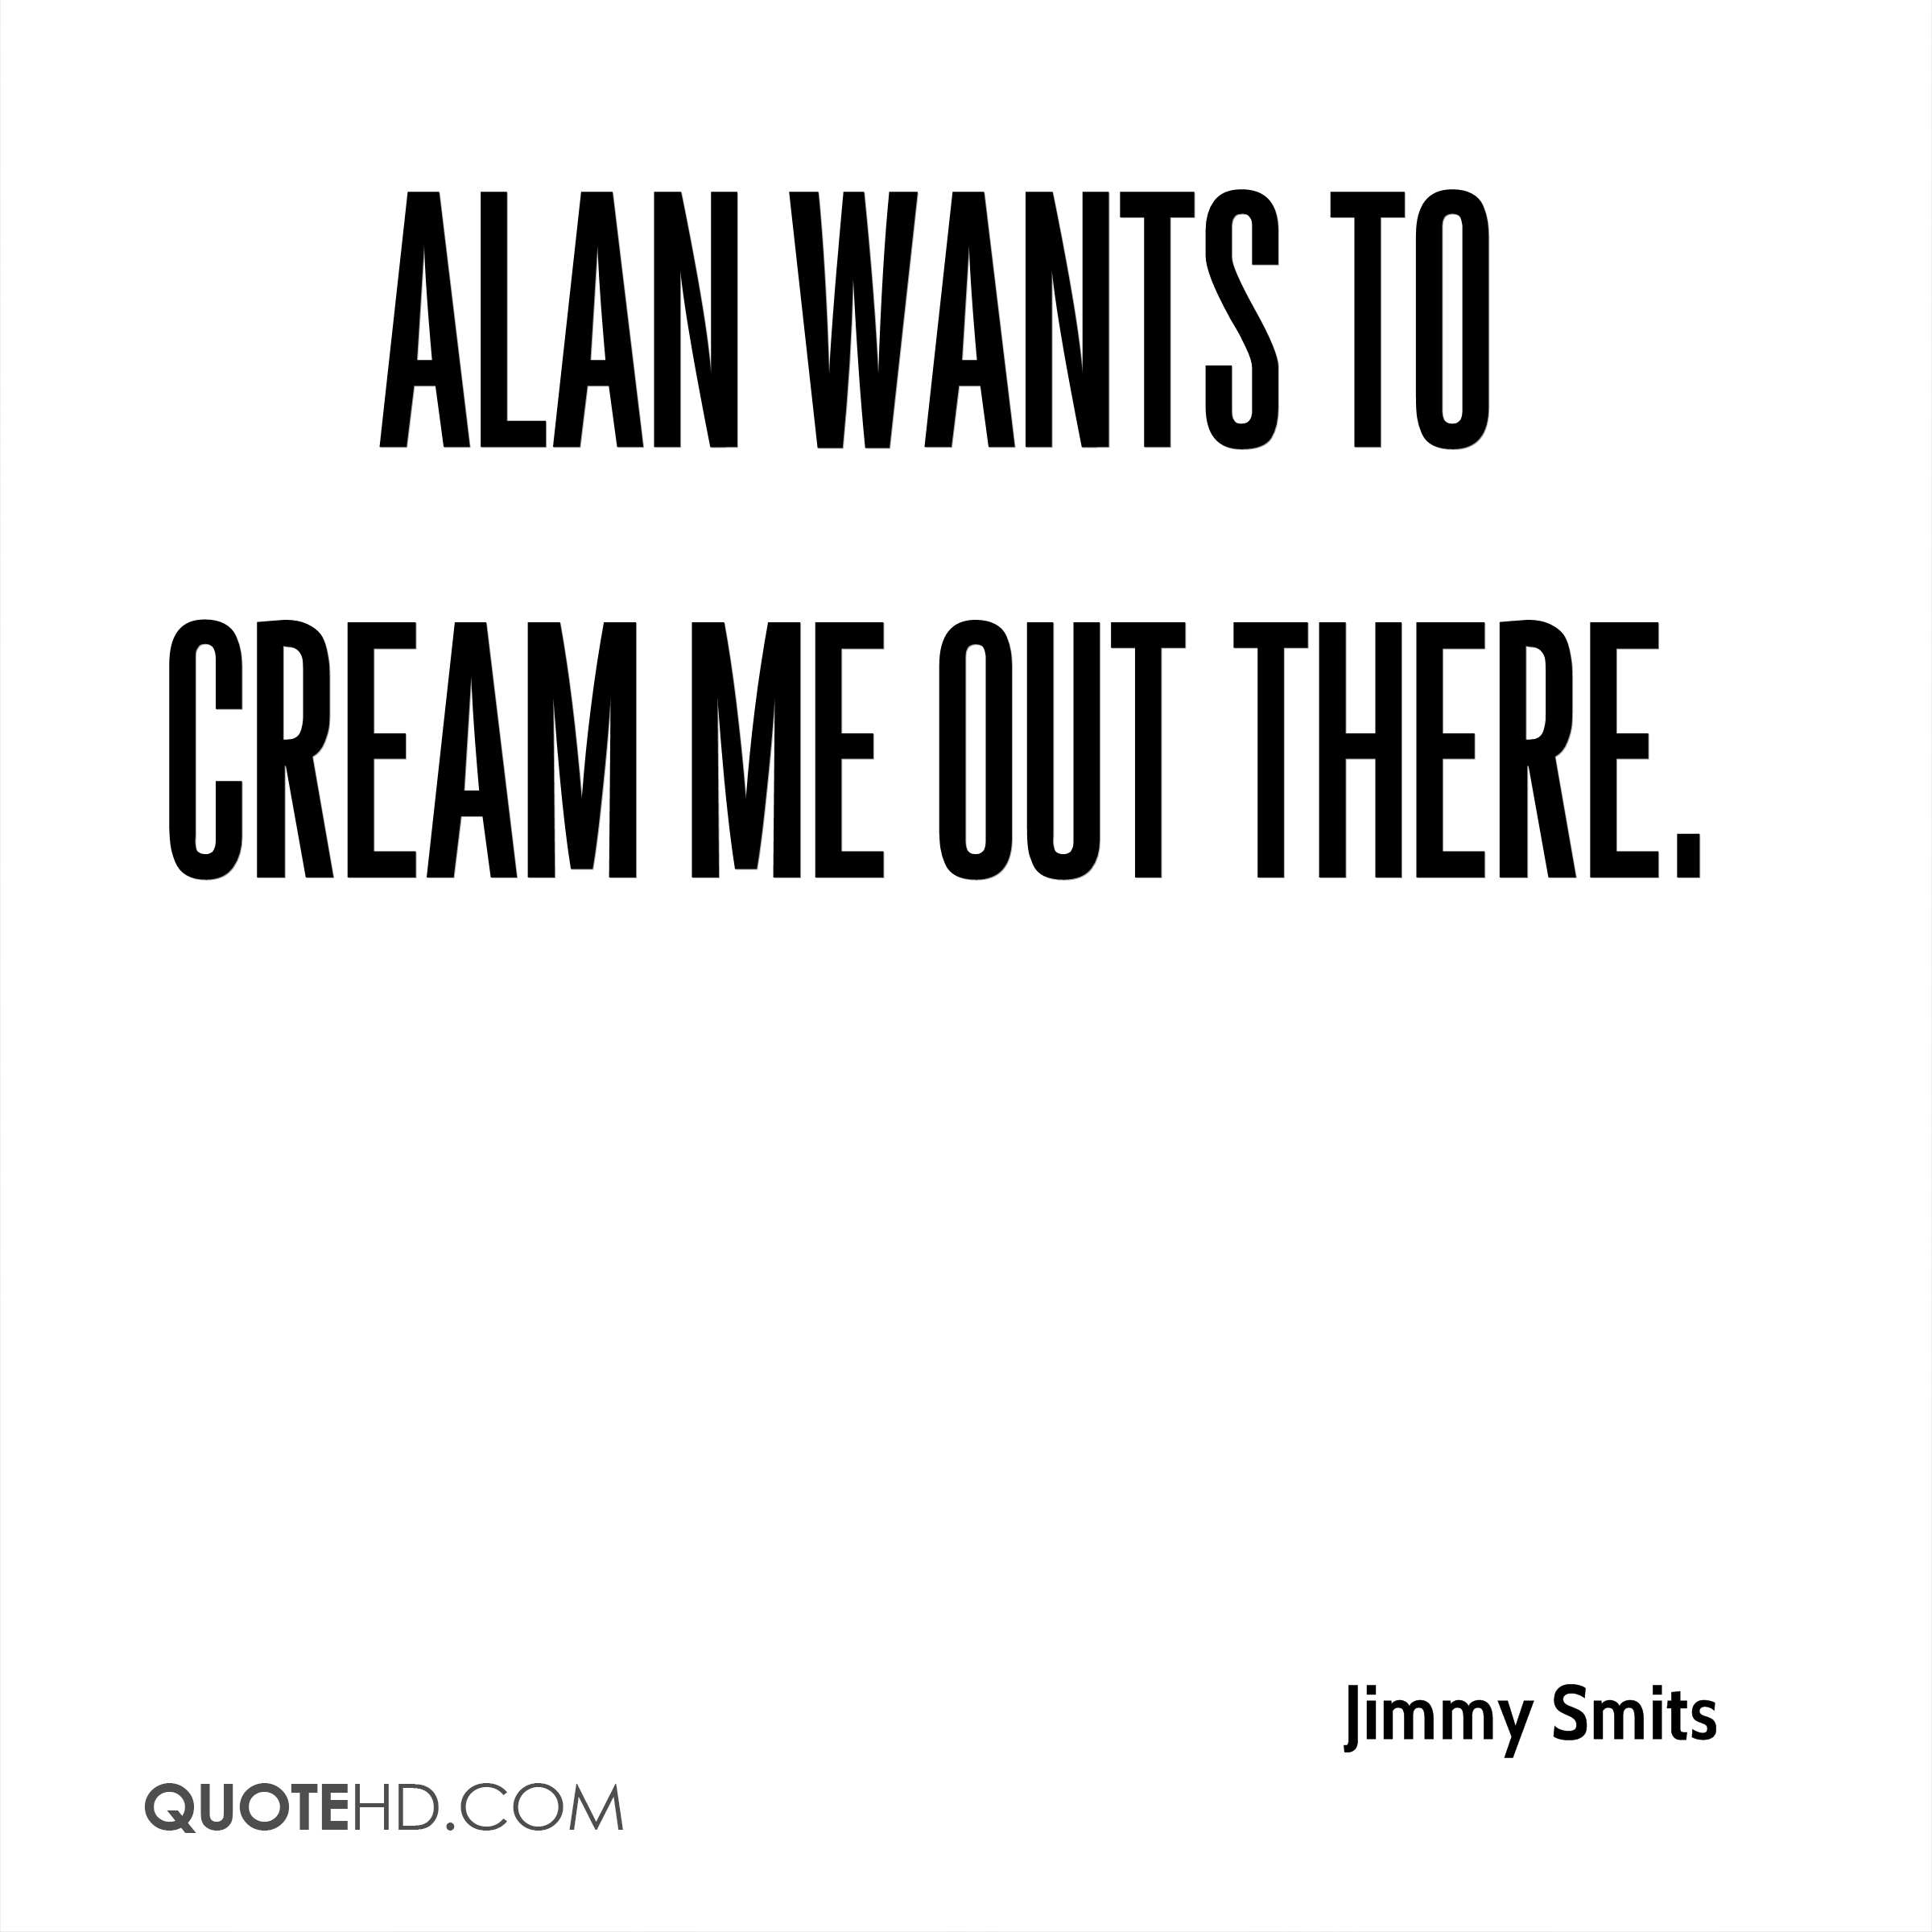 Alan wants to cream me out there.